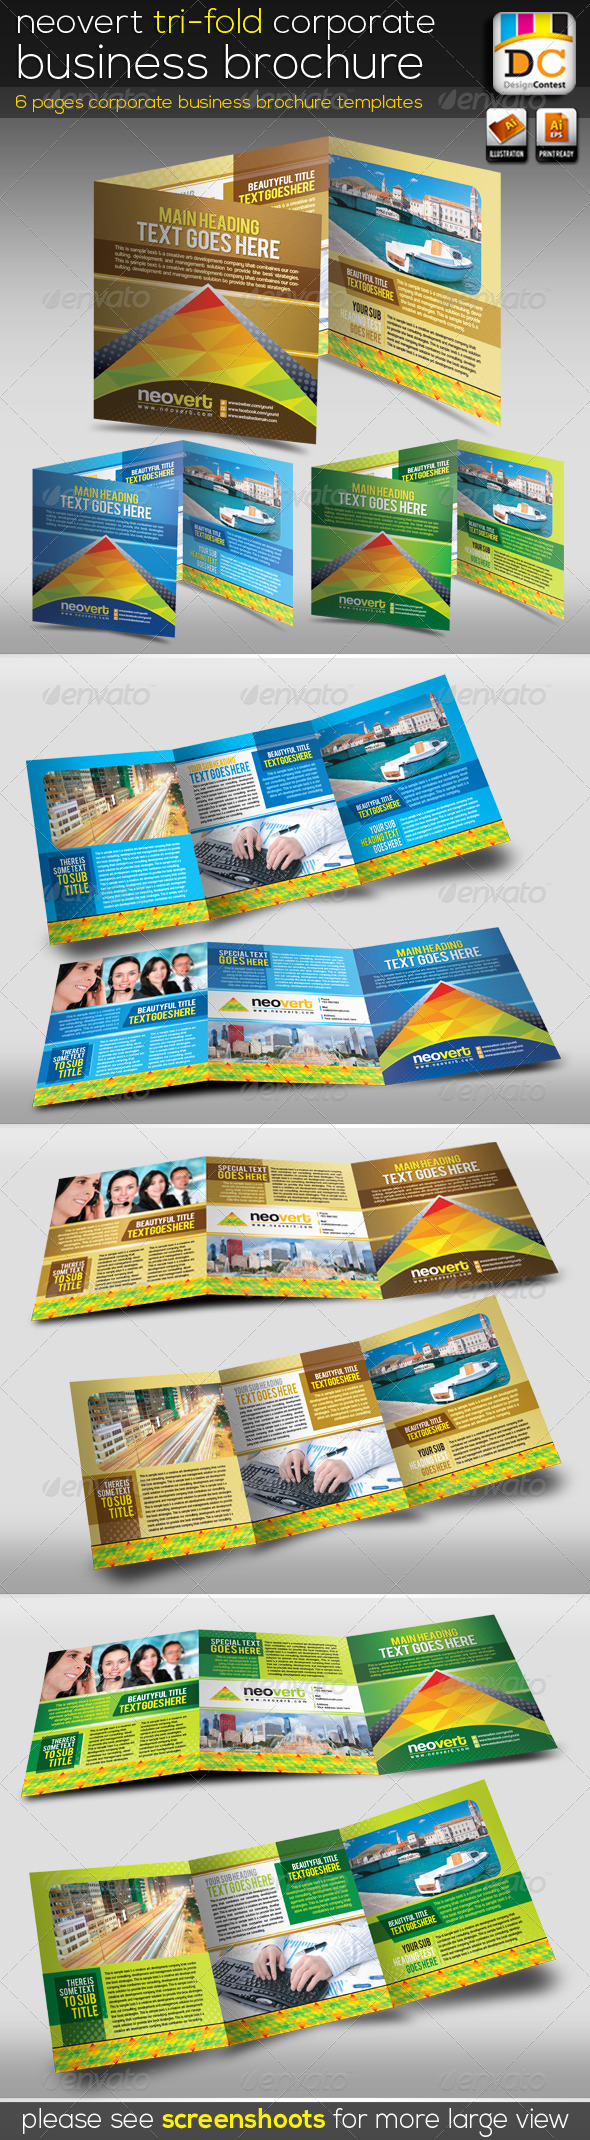 GraphicRiver NeoVert Tri-fold Corporate Business Brochure V-02 4575821